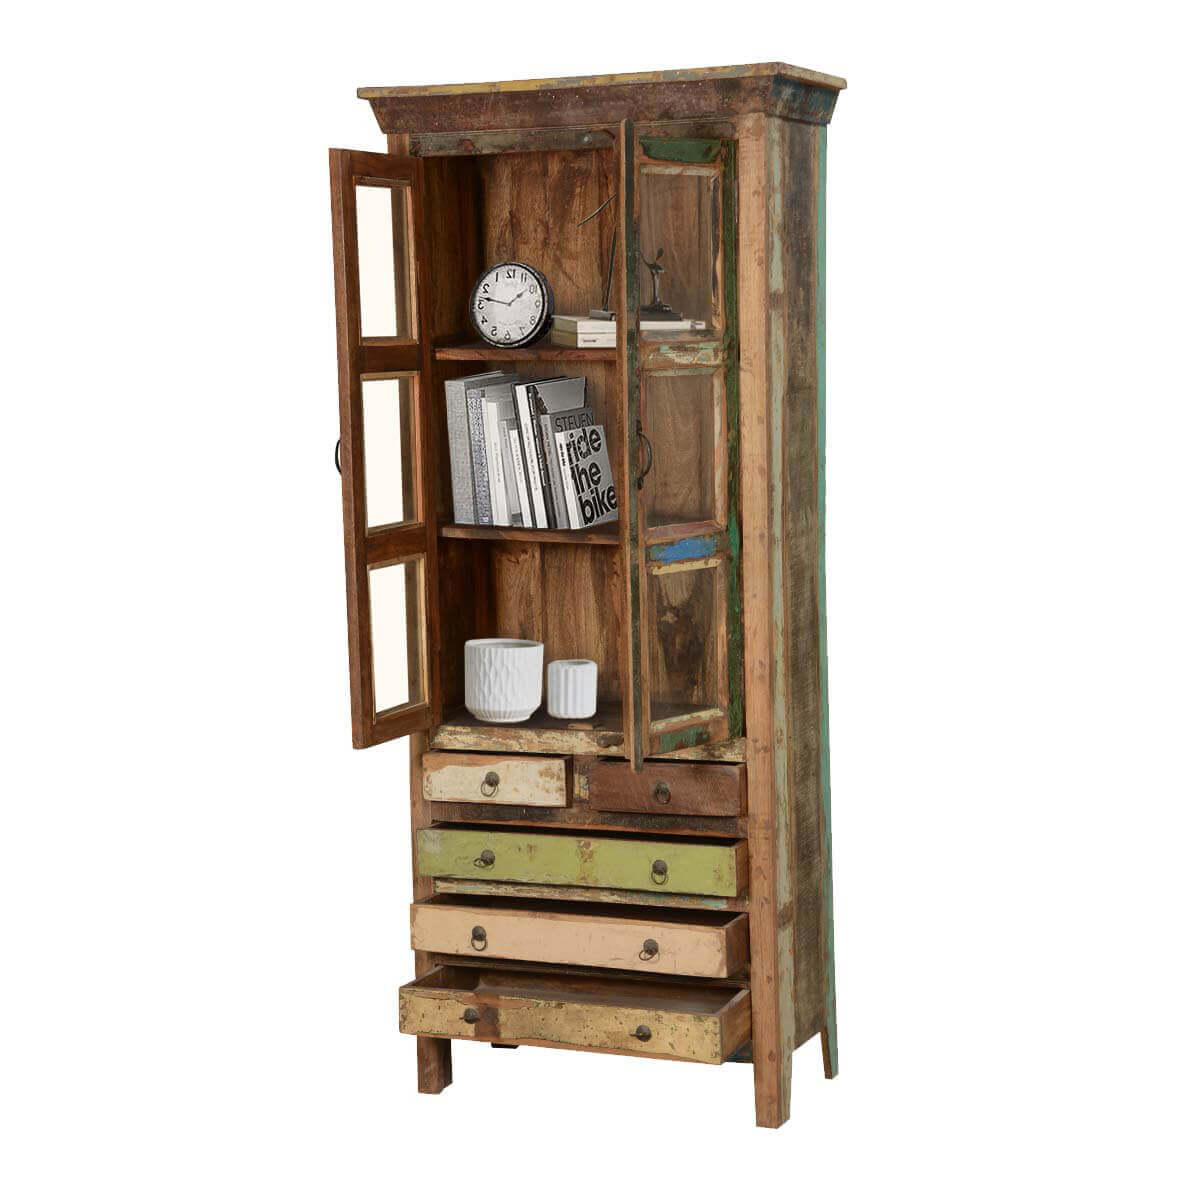 ... Rustic Reclaimed Wood 82.5 High Armoire Display Cabinet W 5 Drawers ...